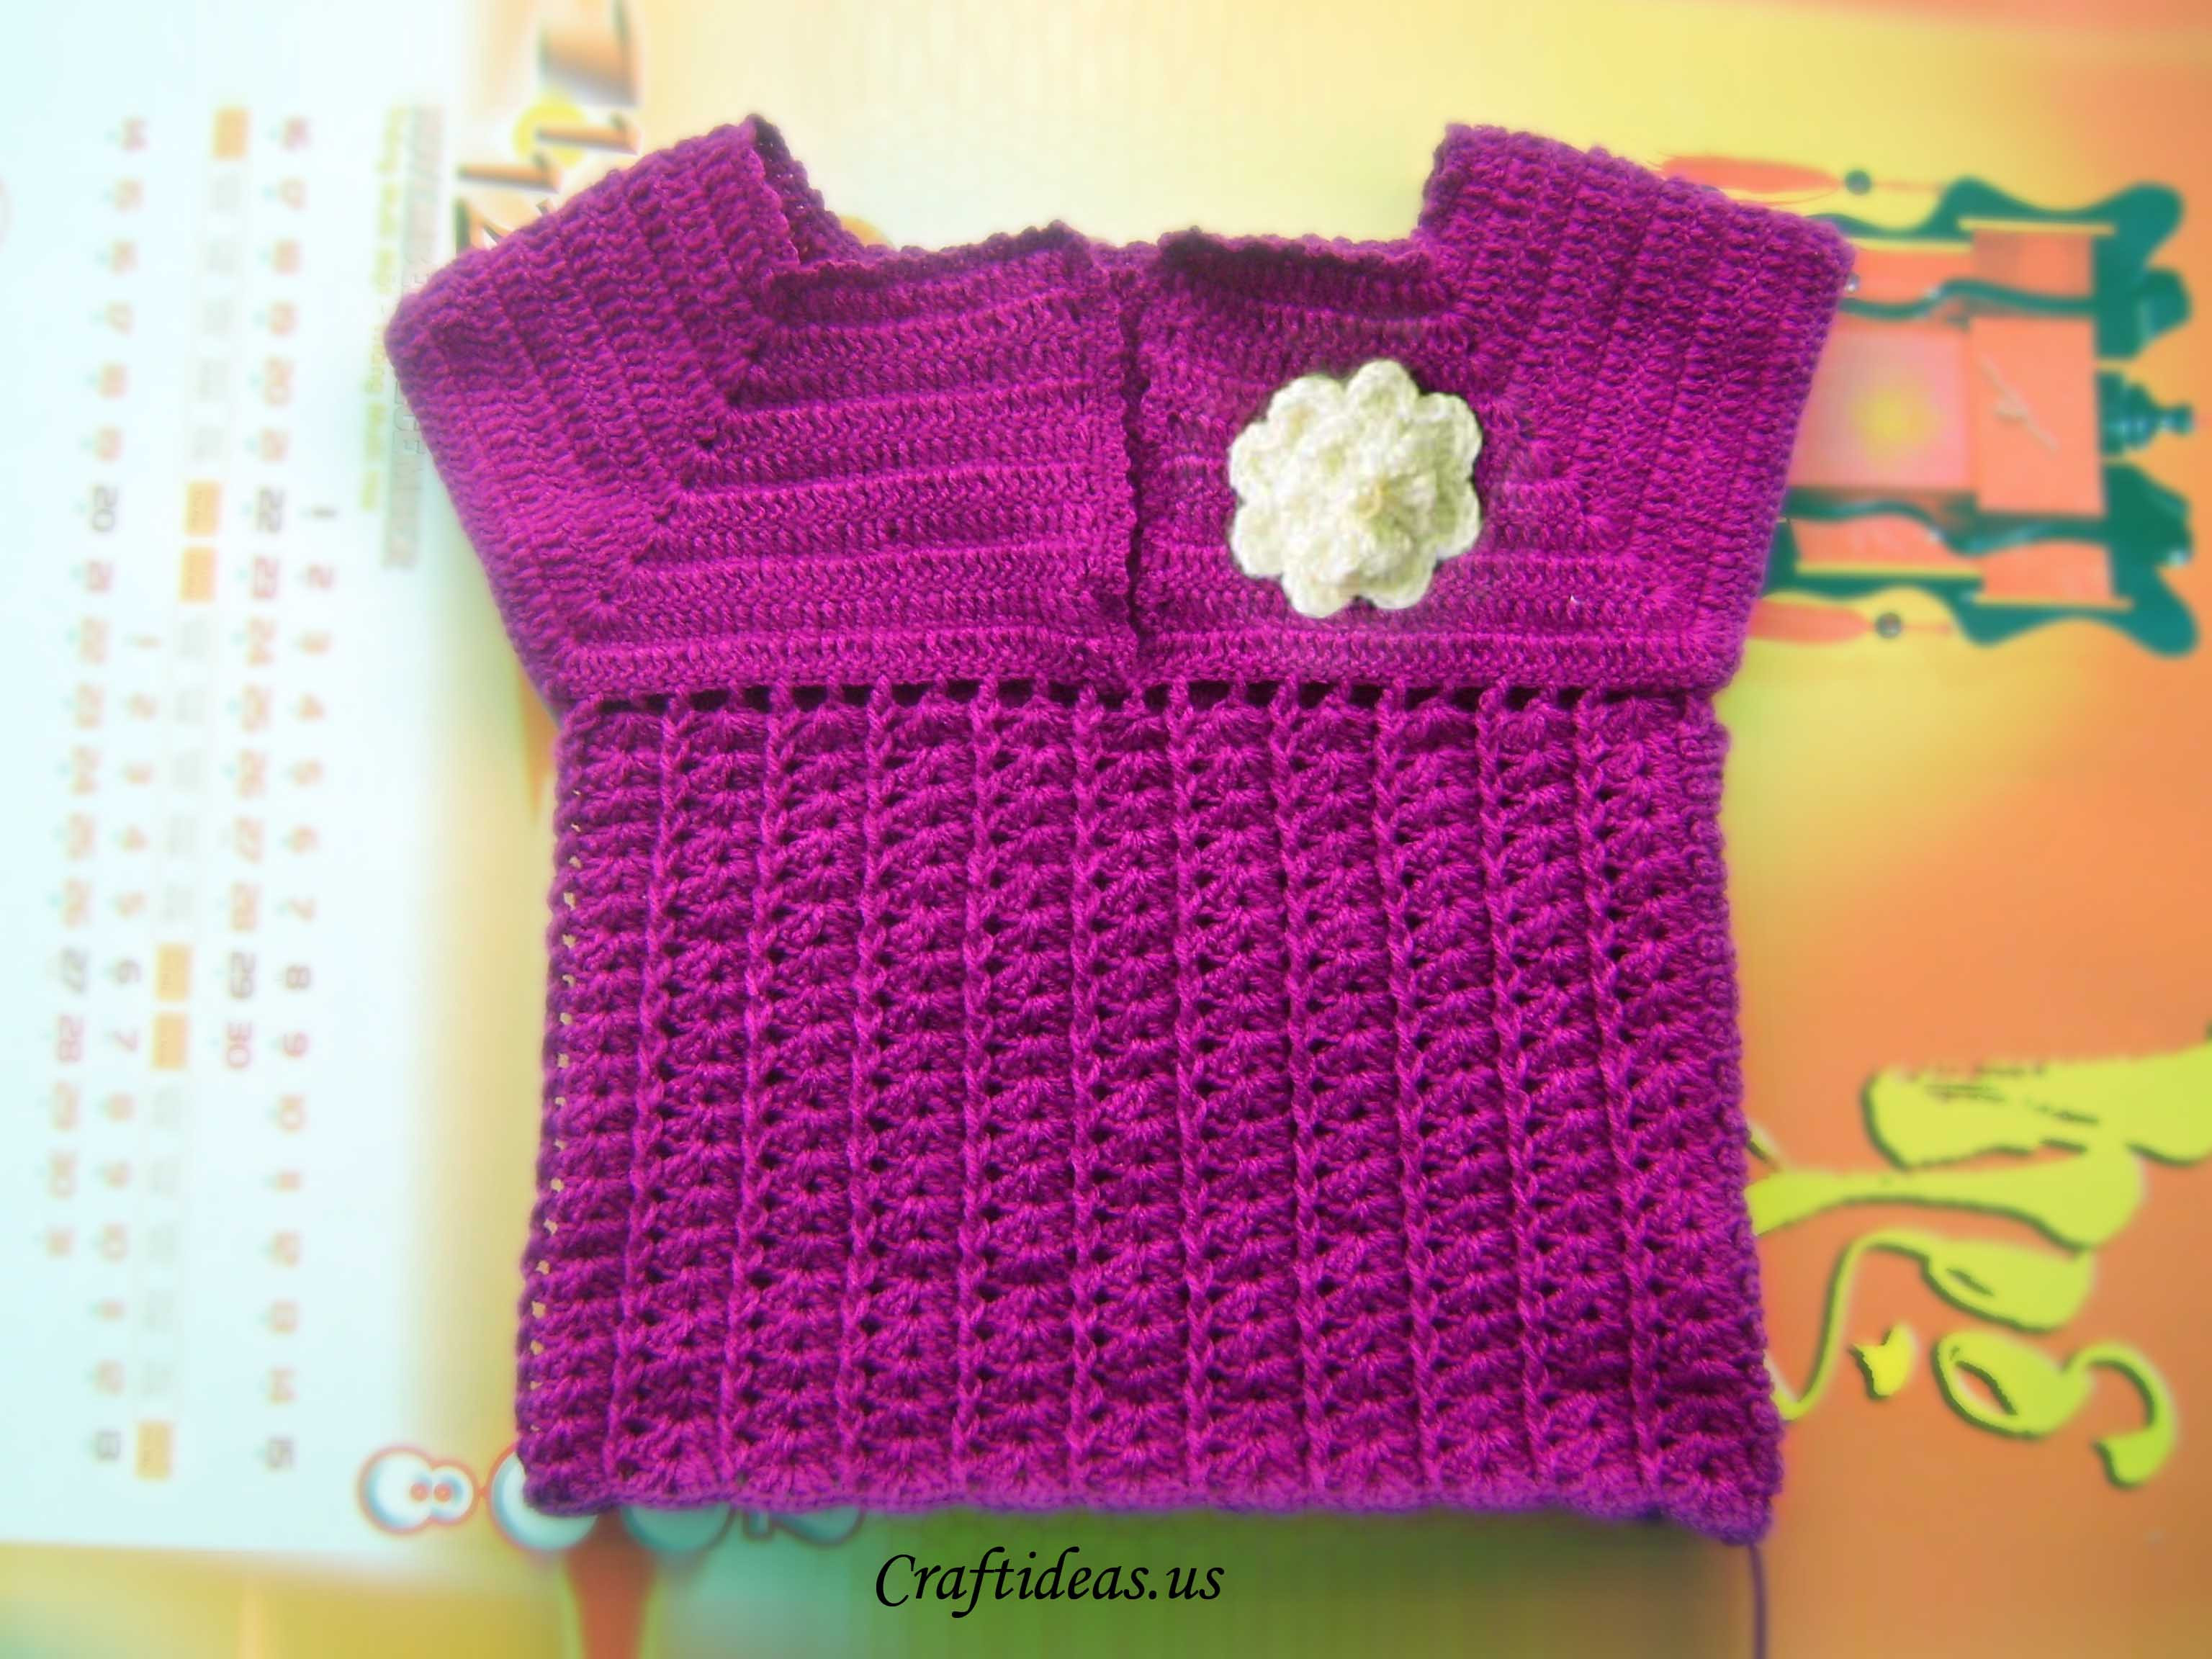 Crochet Shirt Awesome Crochet Sweater for 2 Year Old Girl Craft Ideas Of Great 47 Ideas Crochet Shirt